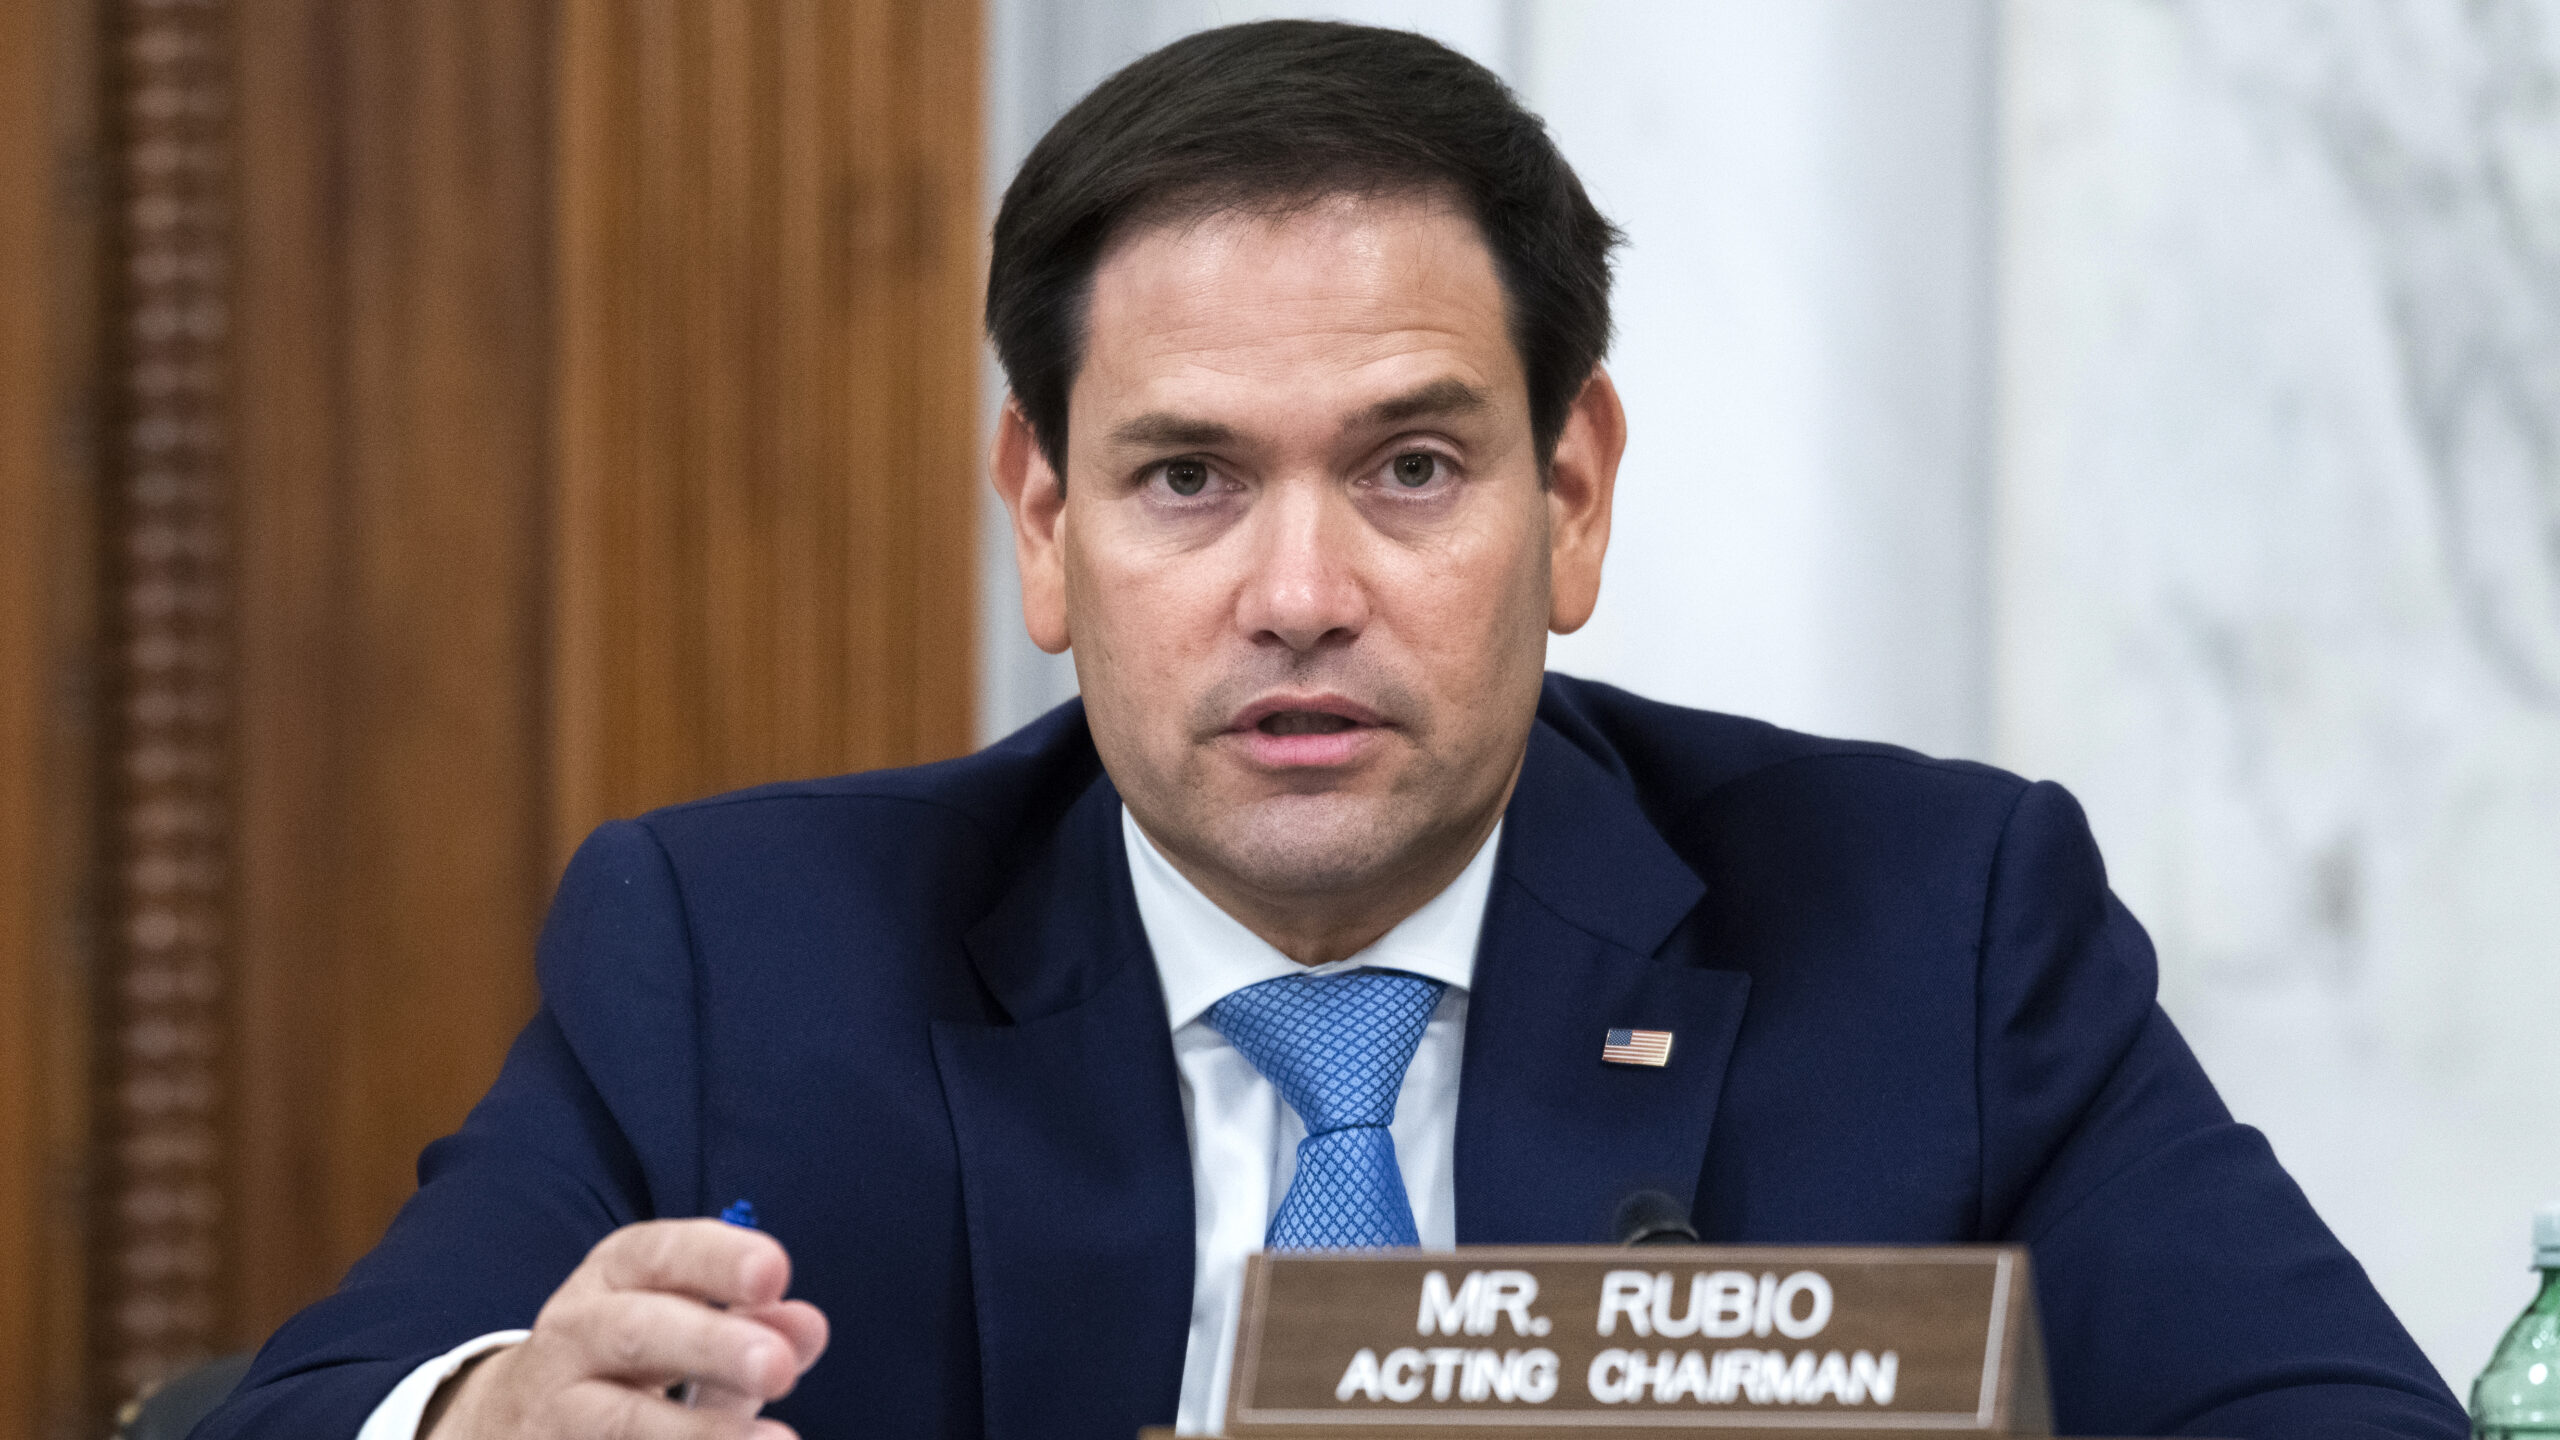 Rubio Eviscerates Potential Biden VP Pick Karen Bass: 'Highest-Ranking Castro Sympathizer In The History Of The United States Government'